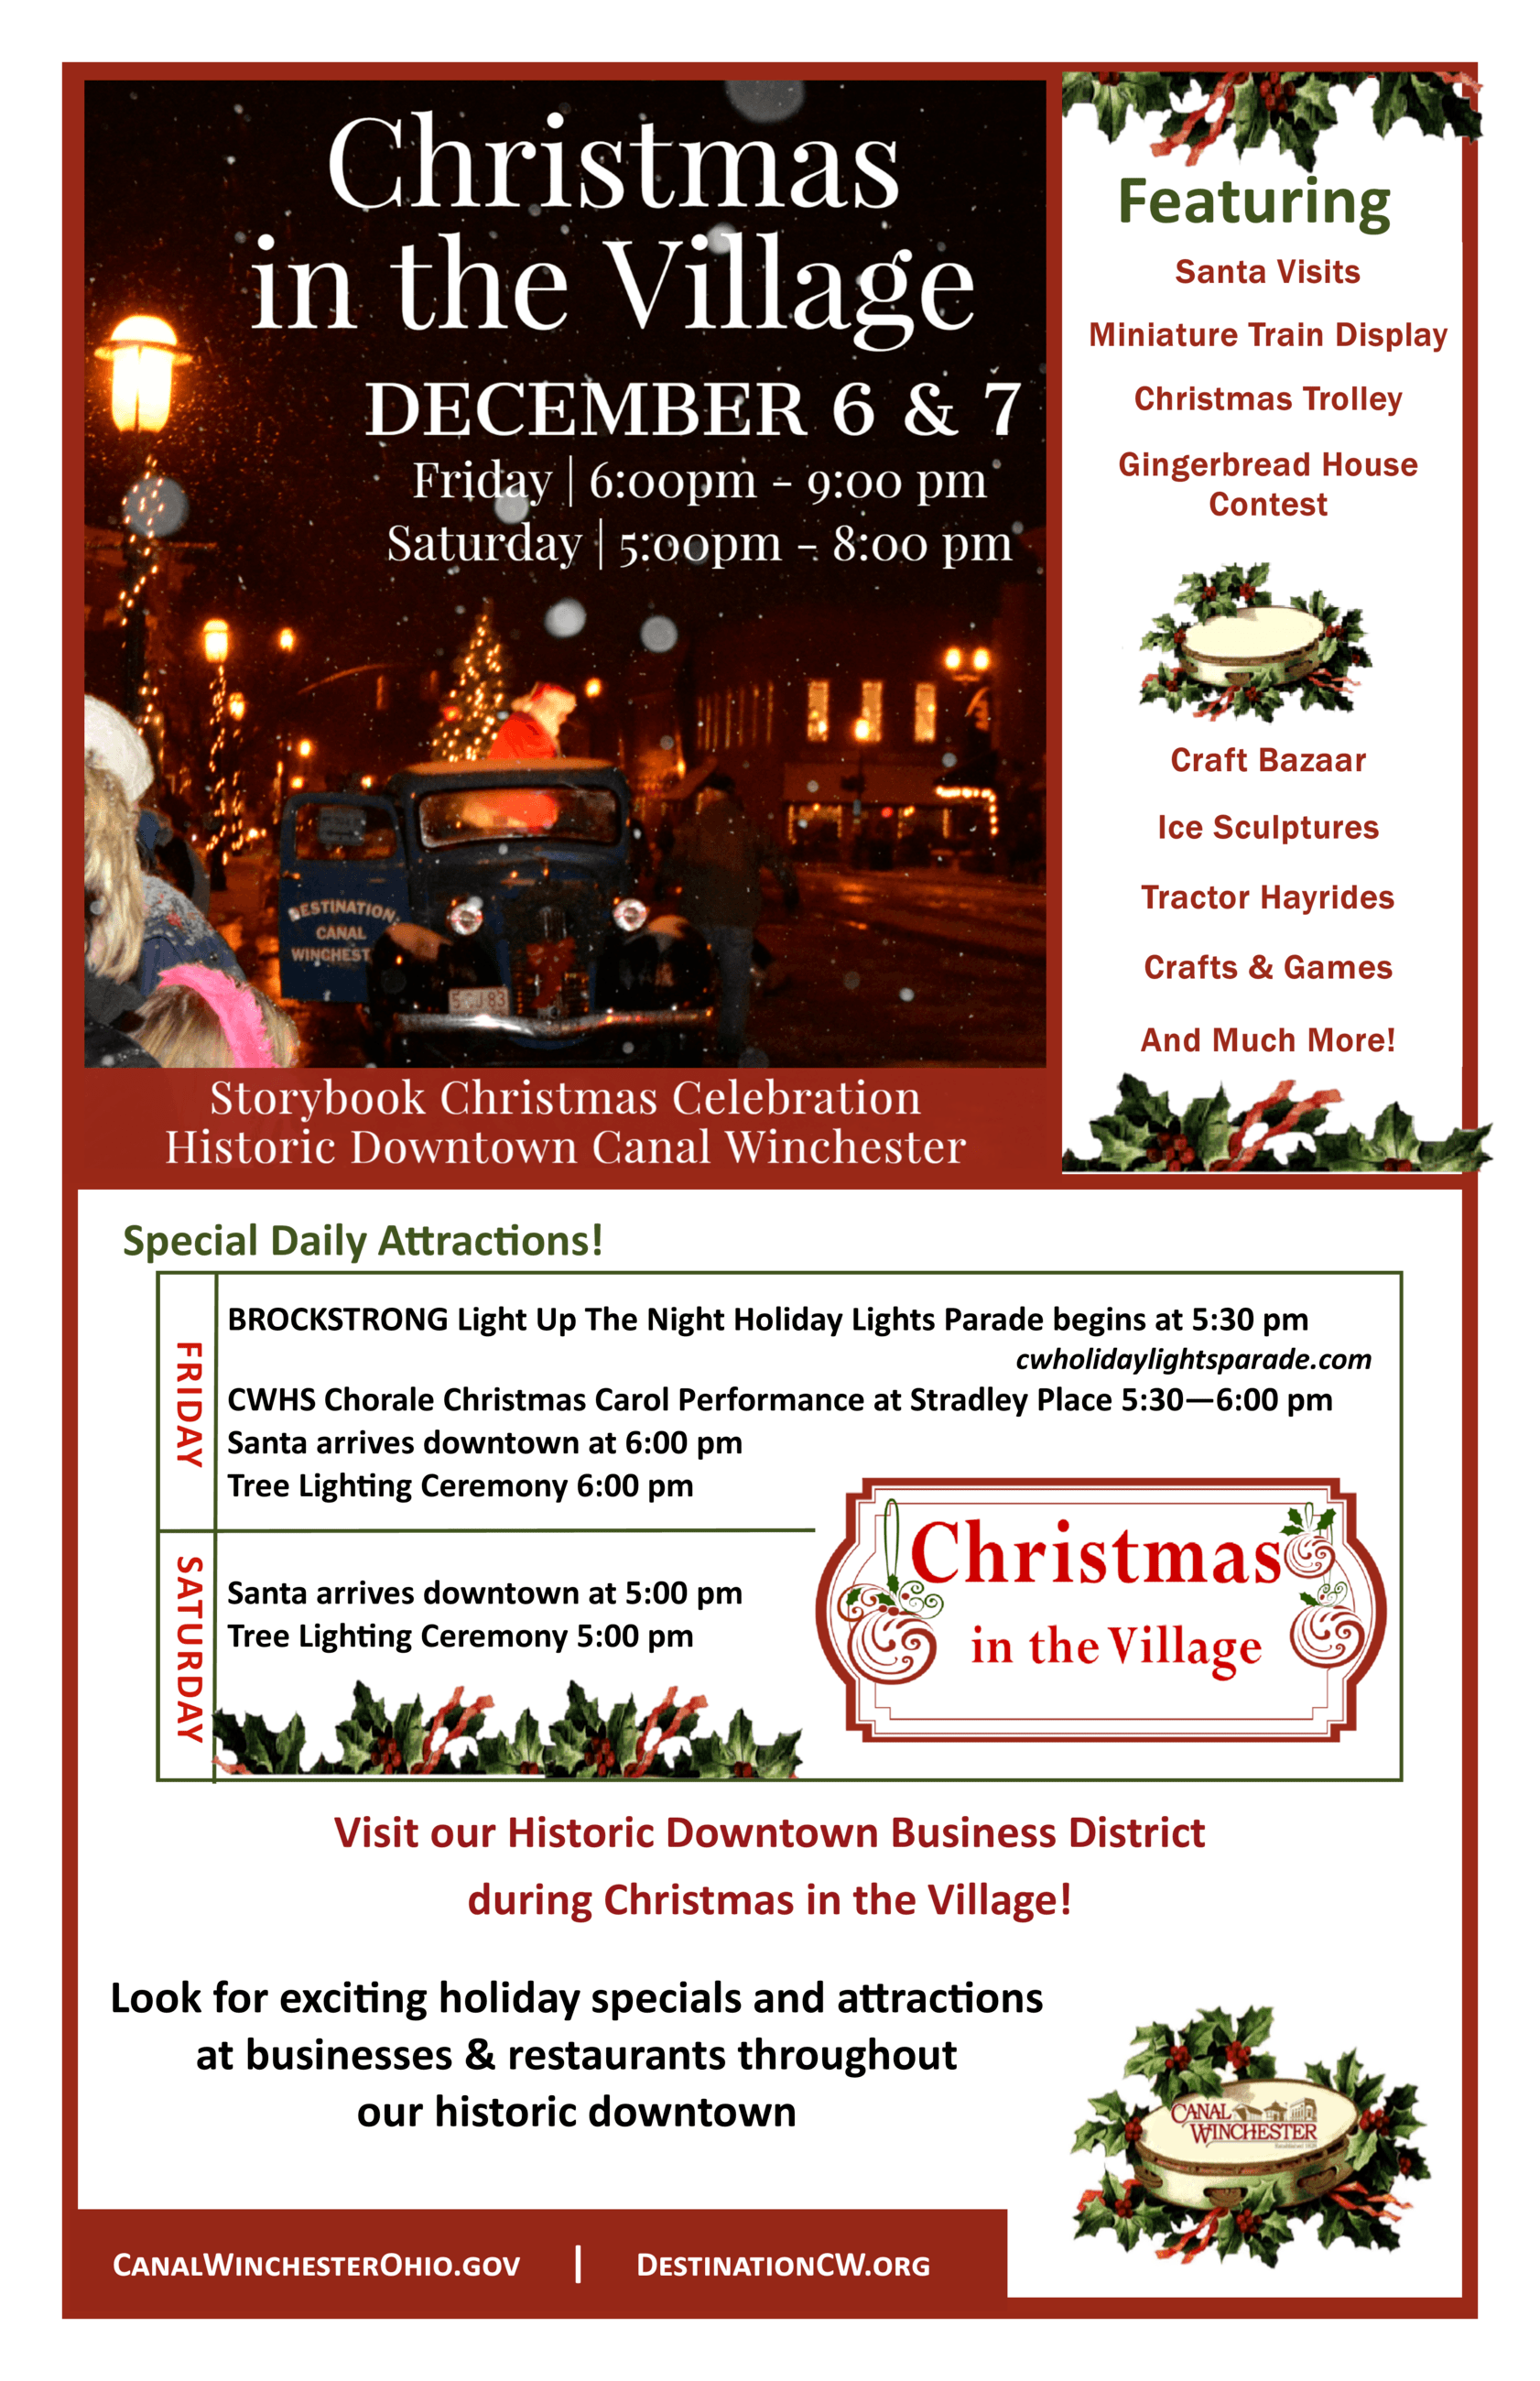 Christmas in the Village Flyer image Opens in new window